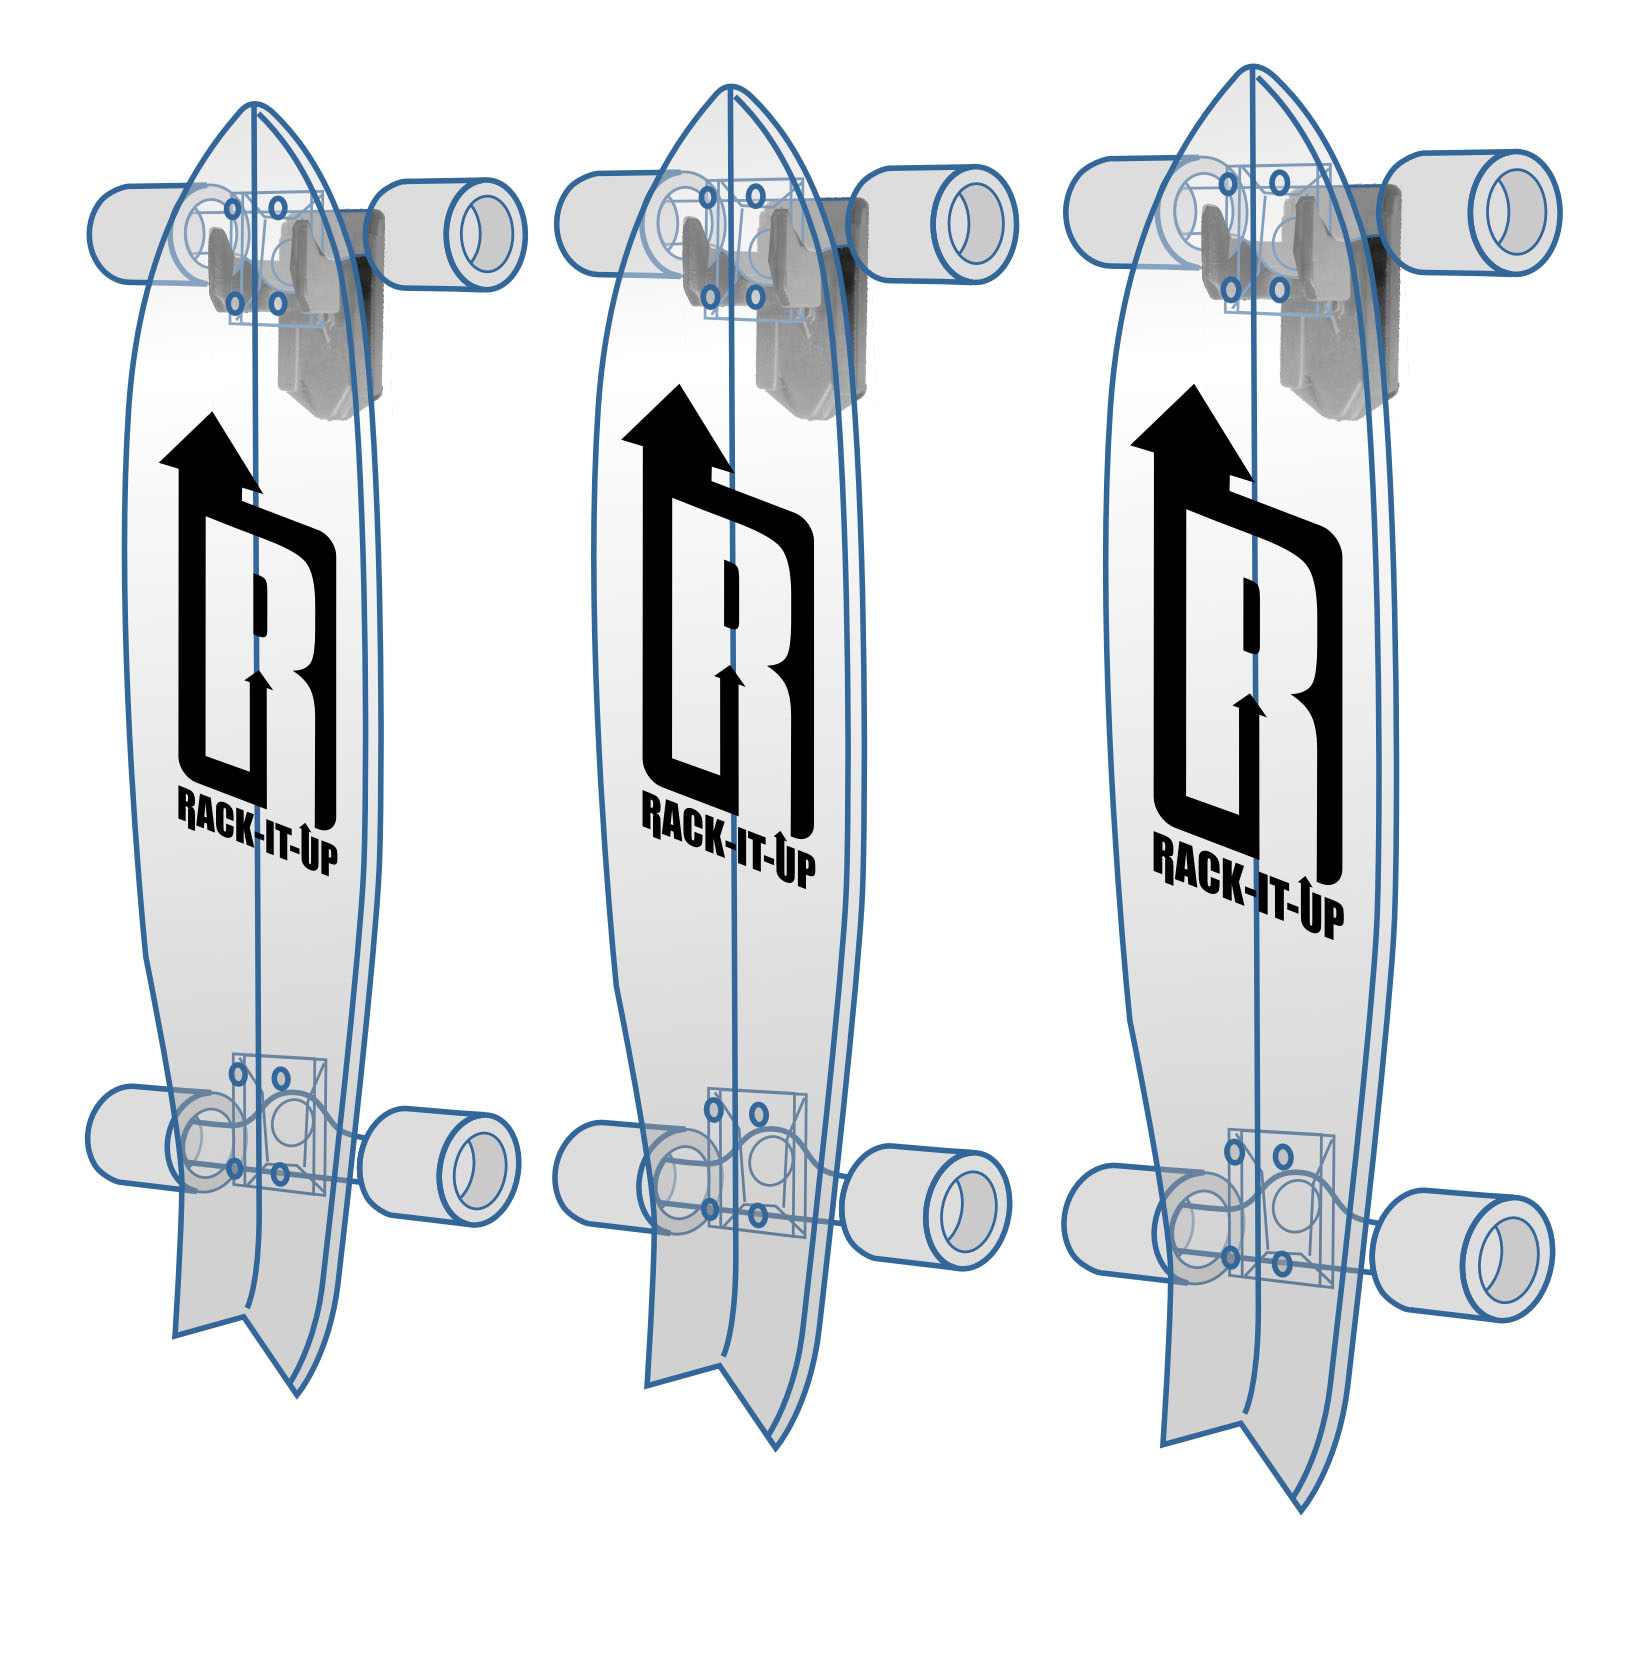 Rackitup-vertical-skateboard-rack ...  sc 1 st  Rack-It-Up Storage & Skateboard Vertical Storage Rack - Rack It Up